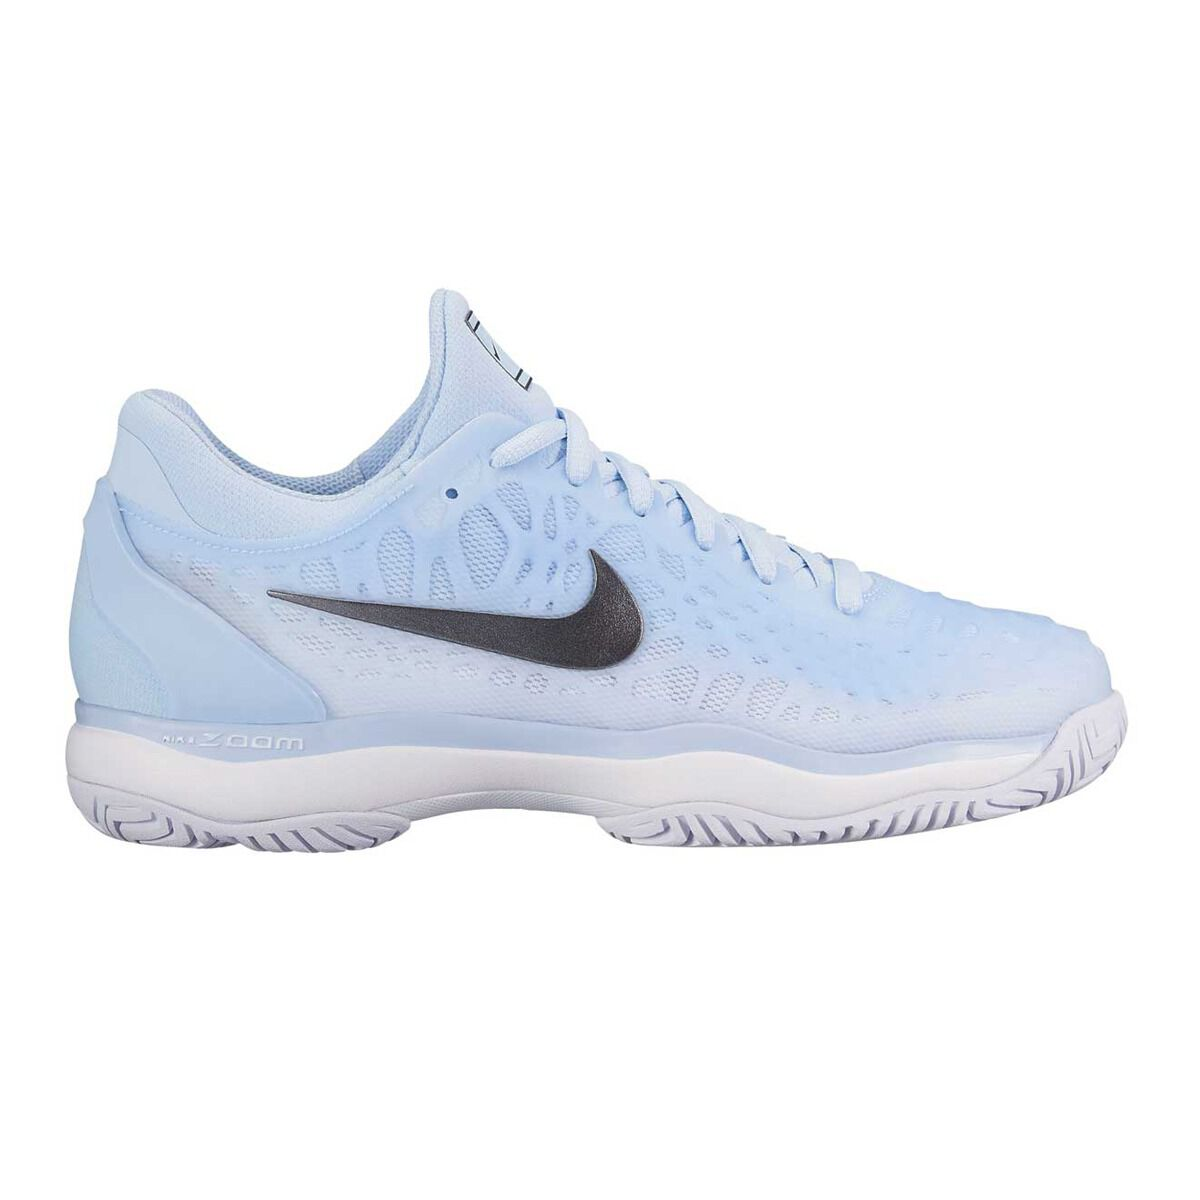 7a740f03ad1a coupon for nike zoom cage 3 womens tennis shoes blue grey us 6 blue grey  d313b